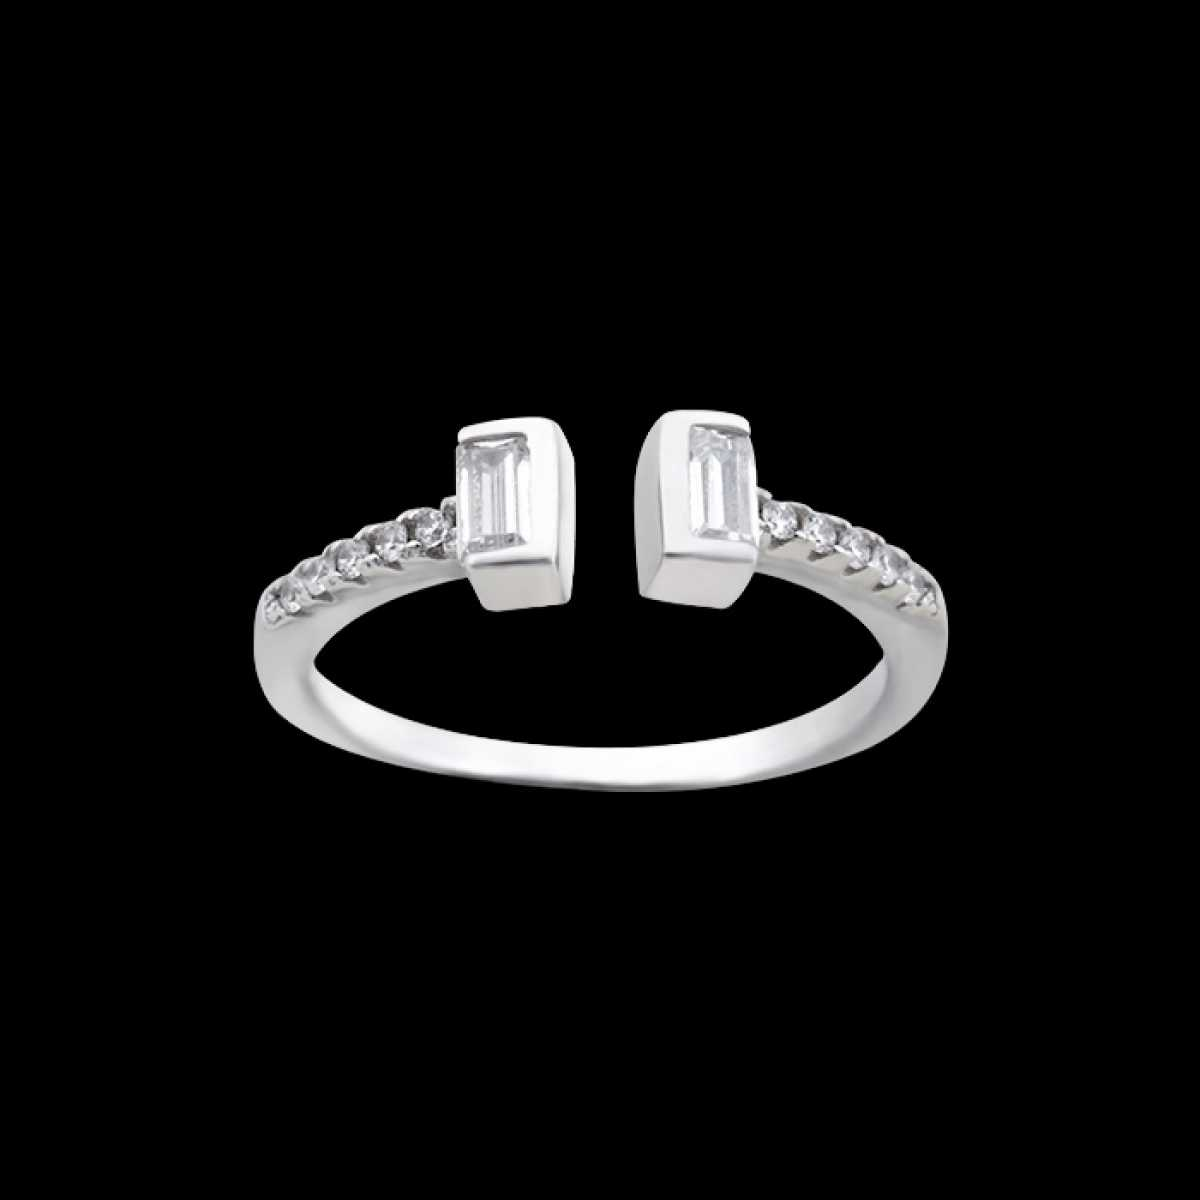 New Look Silver Ring